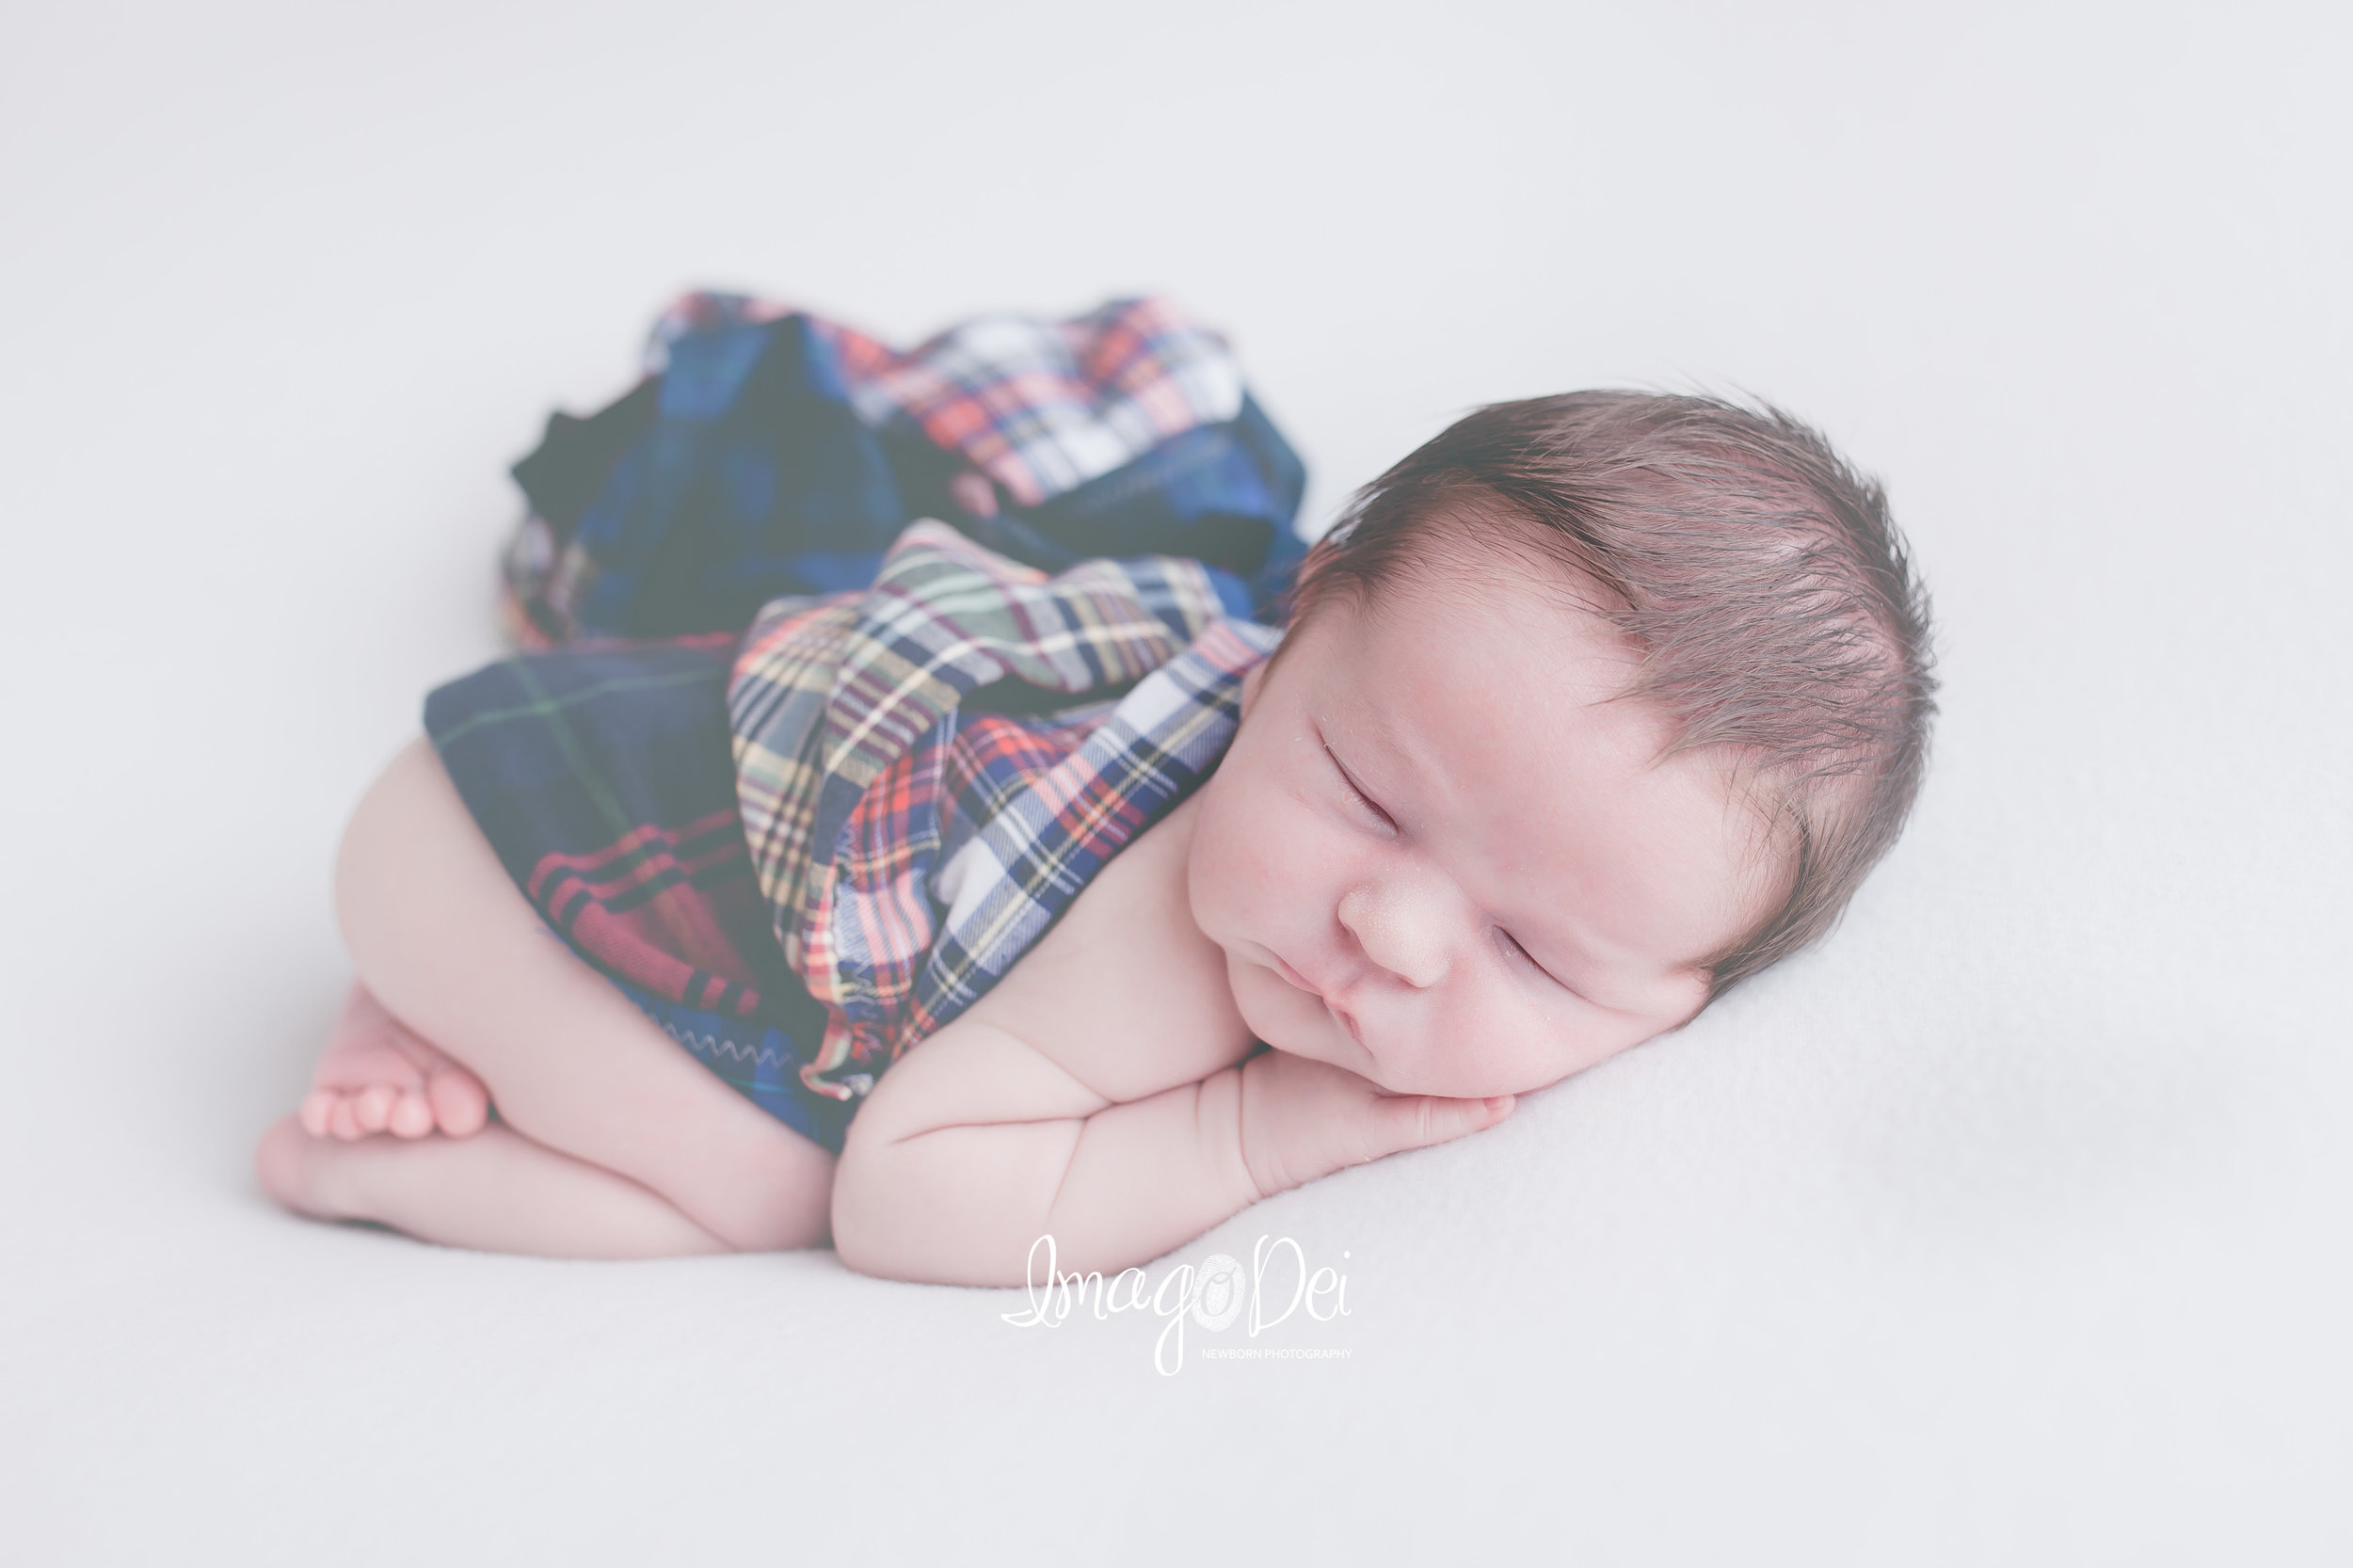 "- ""We LOVED working with Imago Dei! Crystal made us so comfortable and captured the sweetest pictures of our newest addition. The finished images were amazing and she has a quick turn-around time.""-Kristin J"